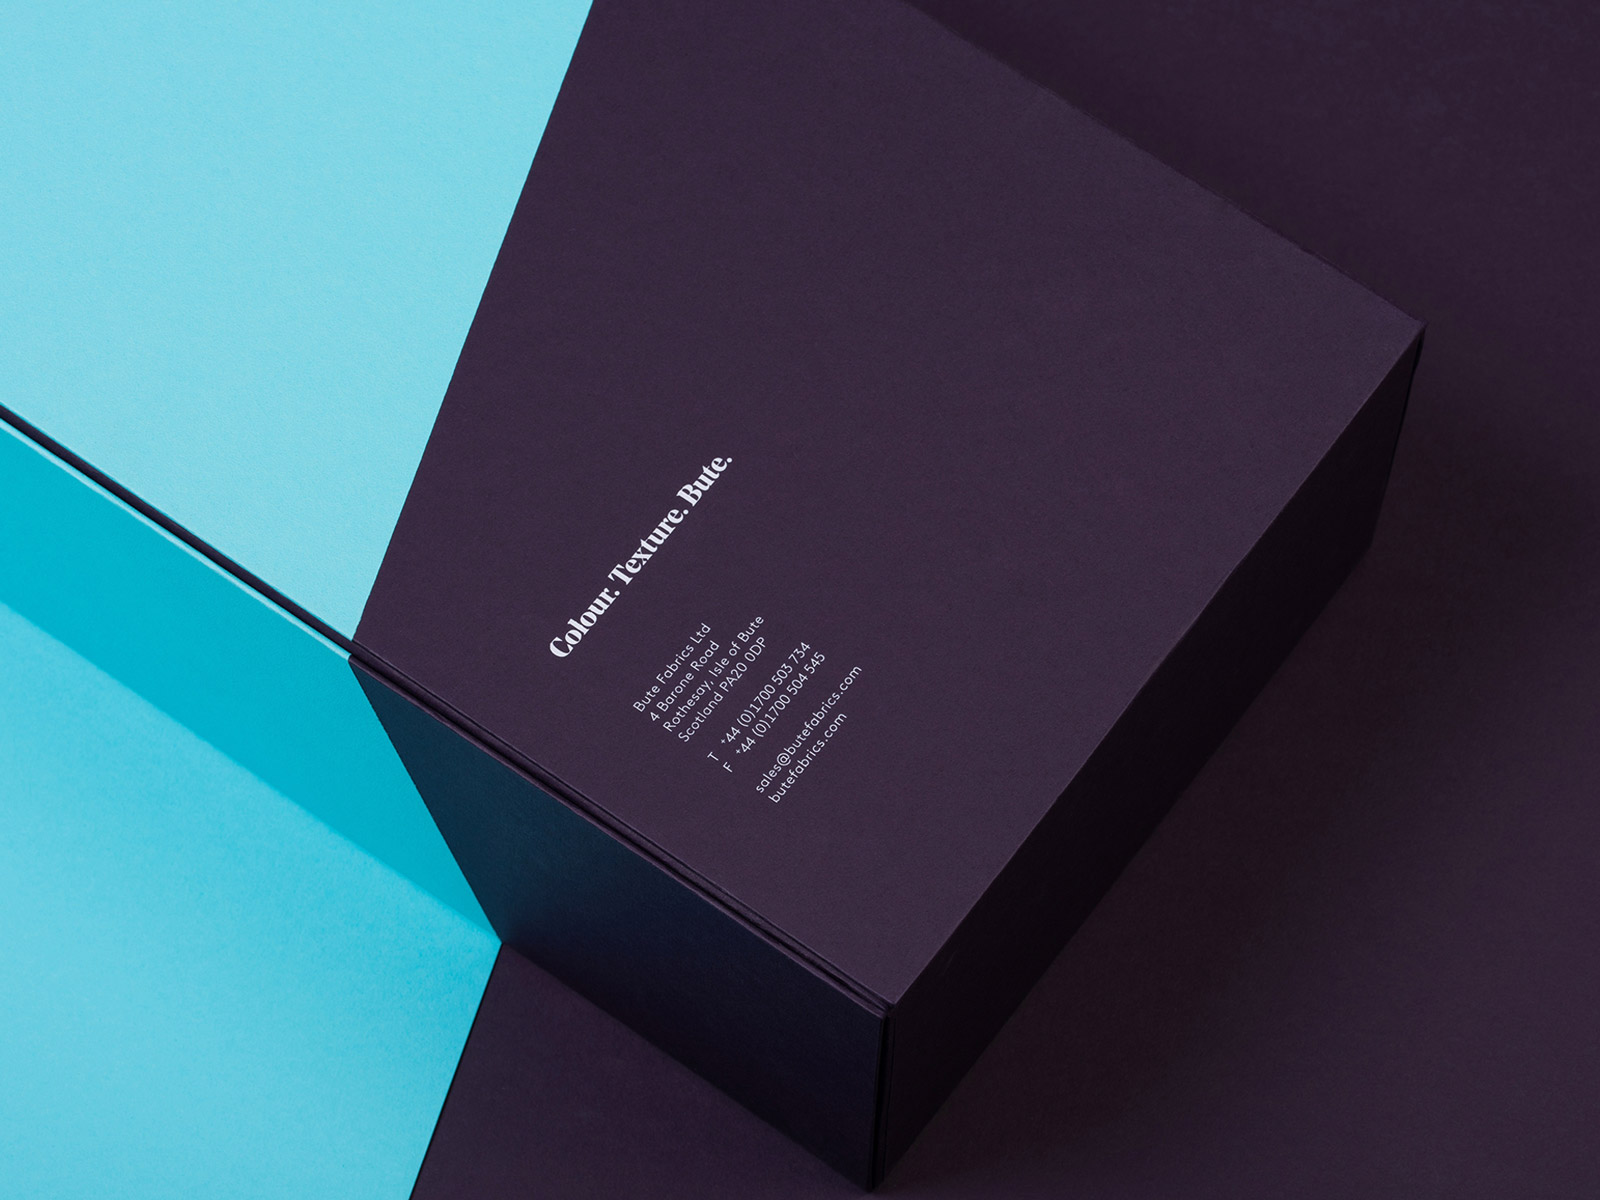 bute-identity-graphicalhouse-goodfromyou-9.jpg